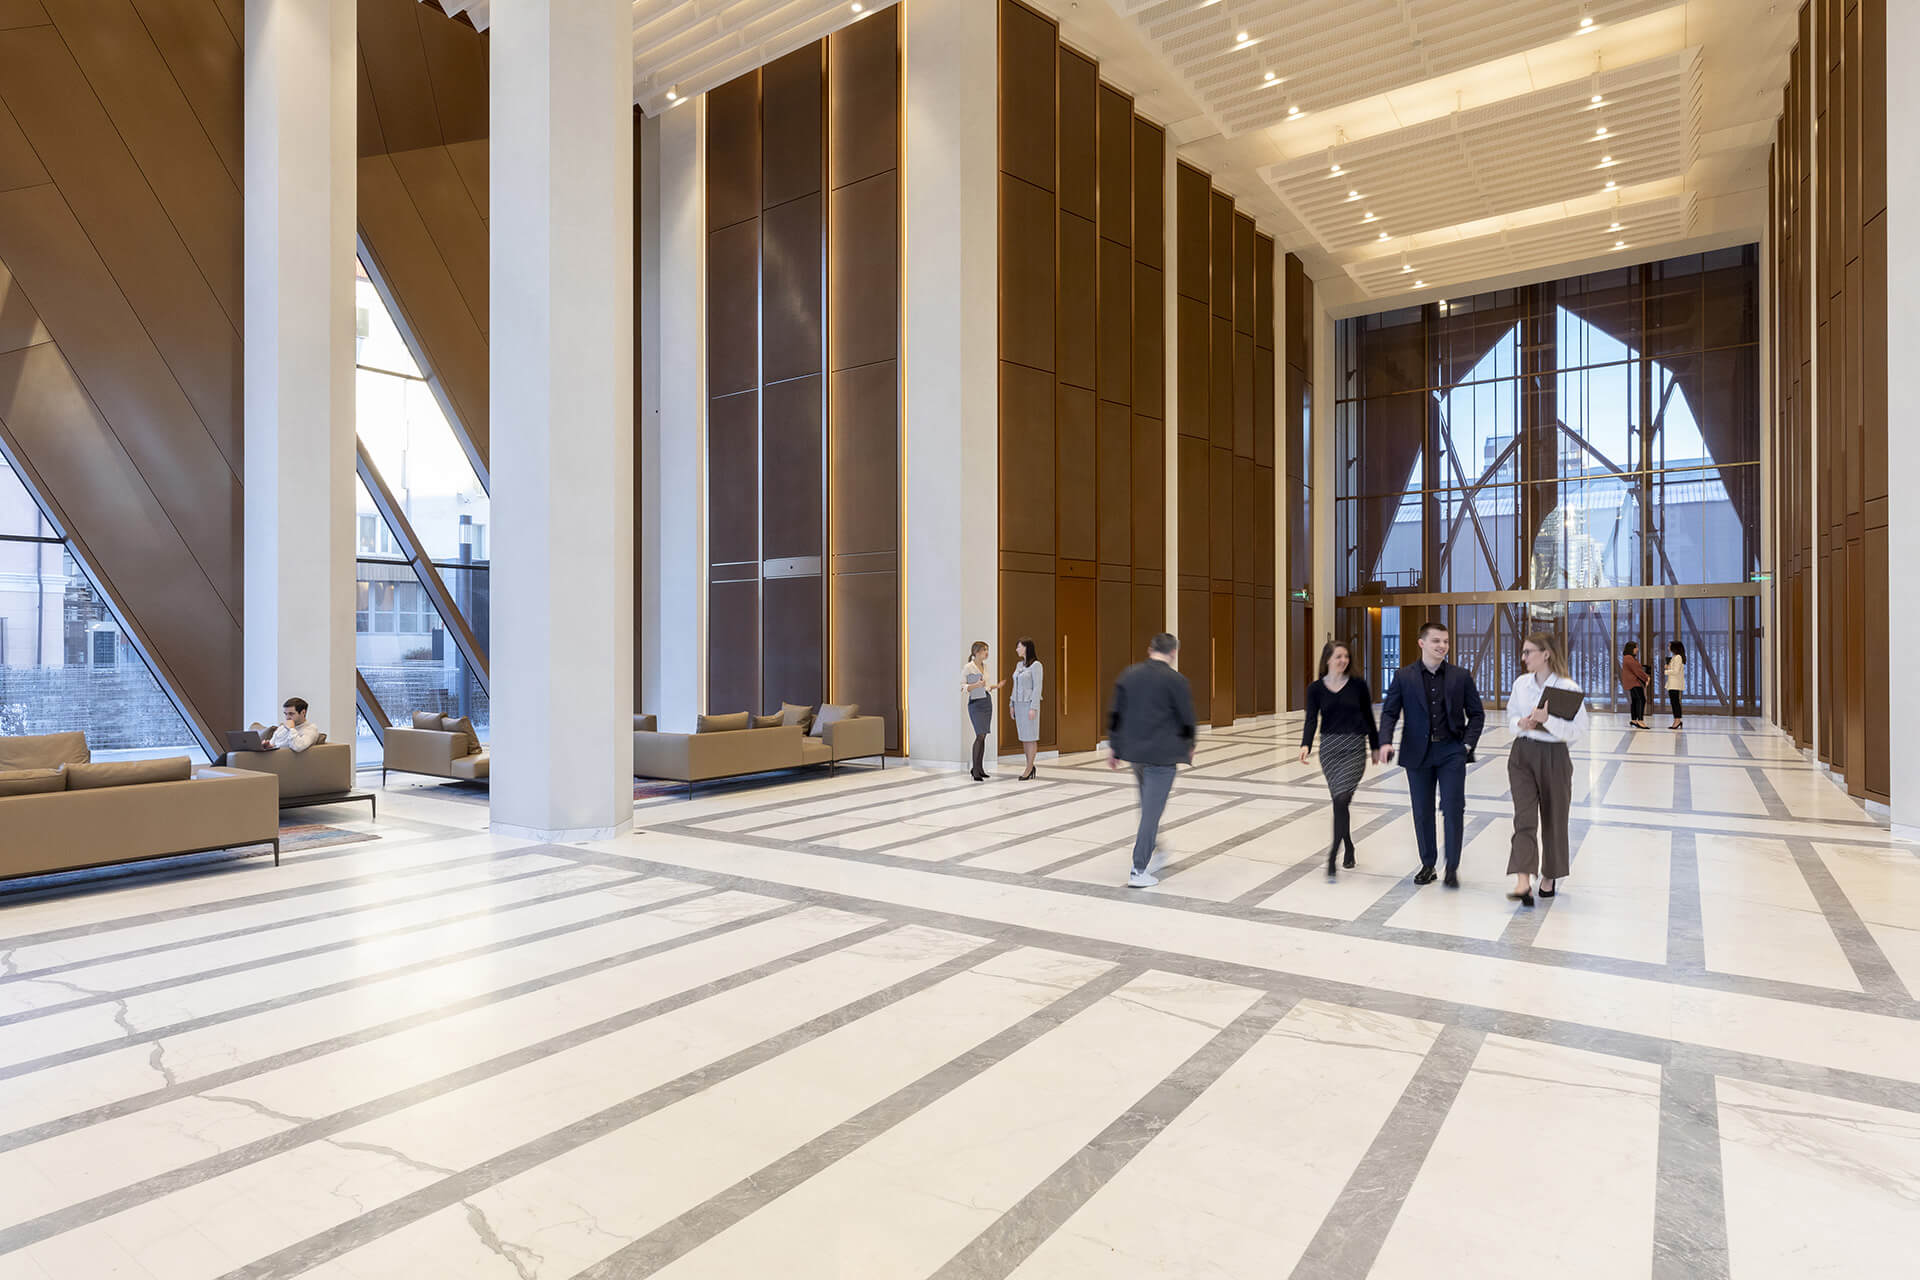 Entrance lobby | RCC Headquarters by Foster + Partners | STIRworld